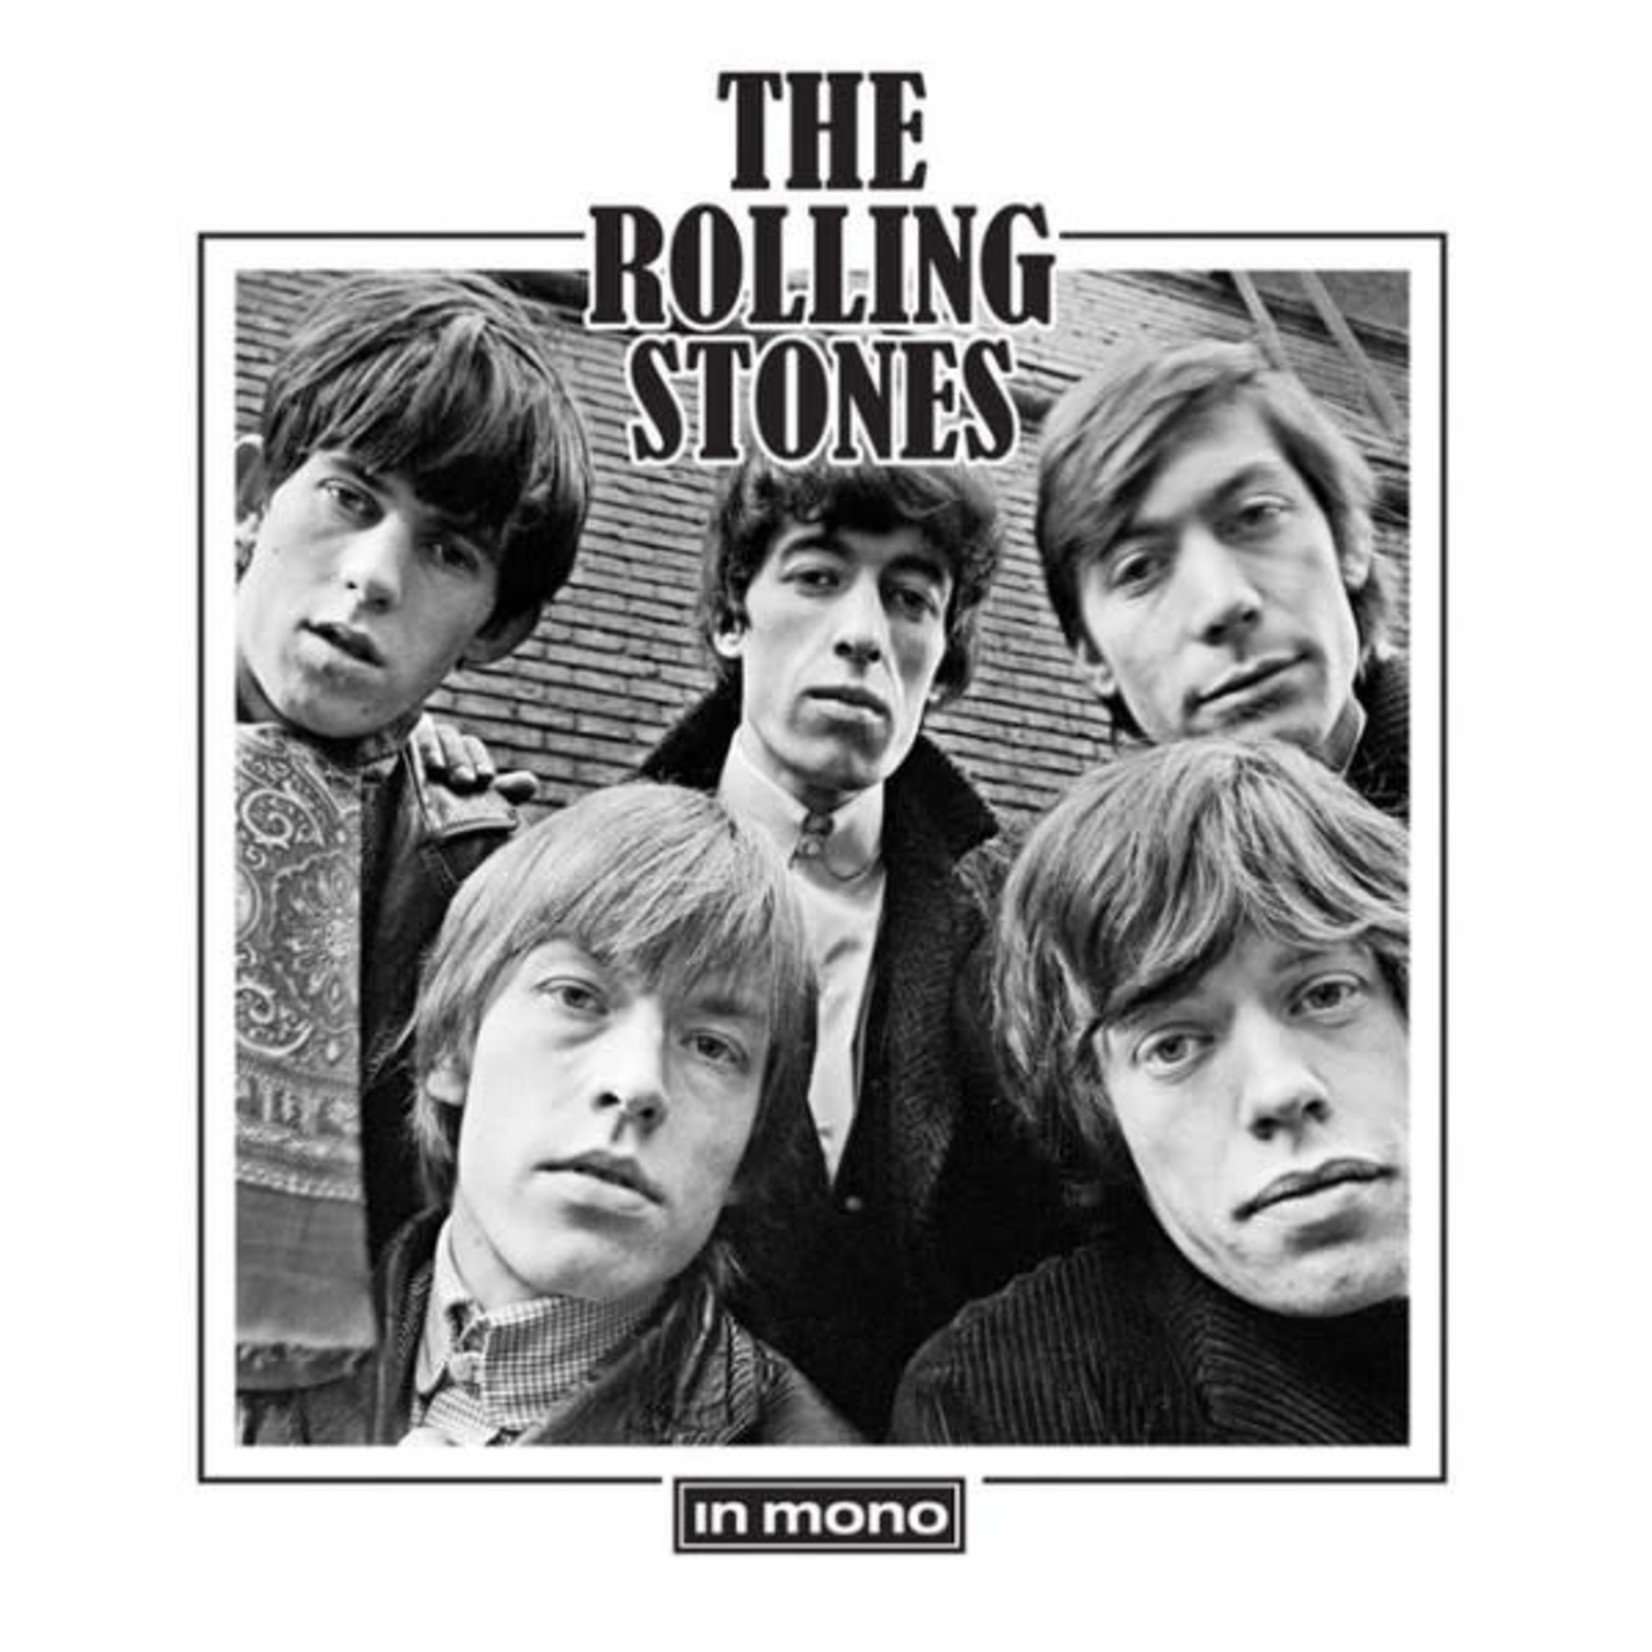 Vinyl The Rolling Stones - Mono Box (Sealed)